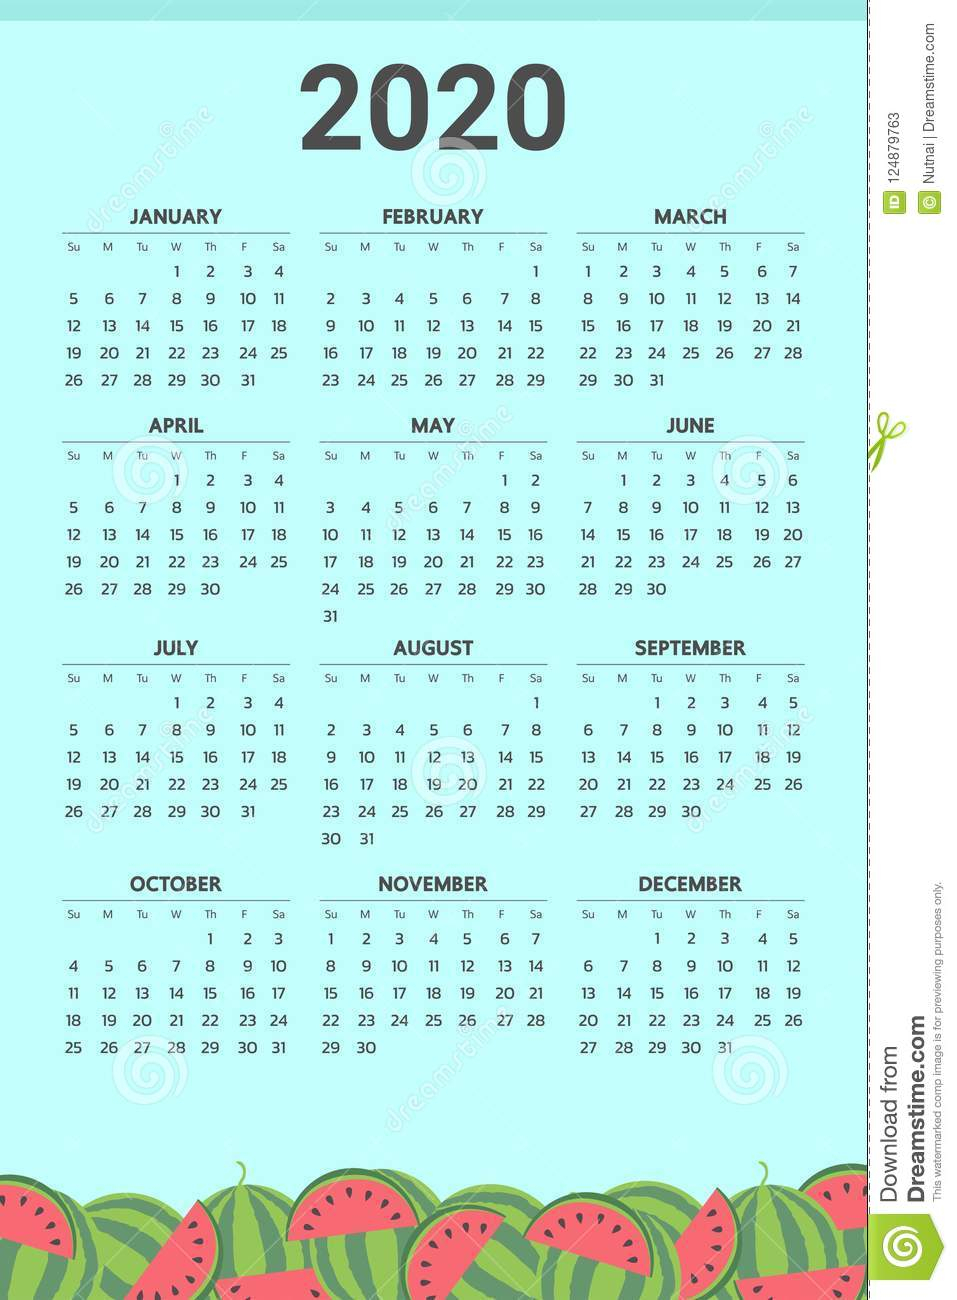 2020 Calendar With Watermelon Theme - Vector Stock Vector